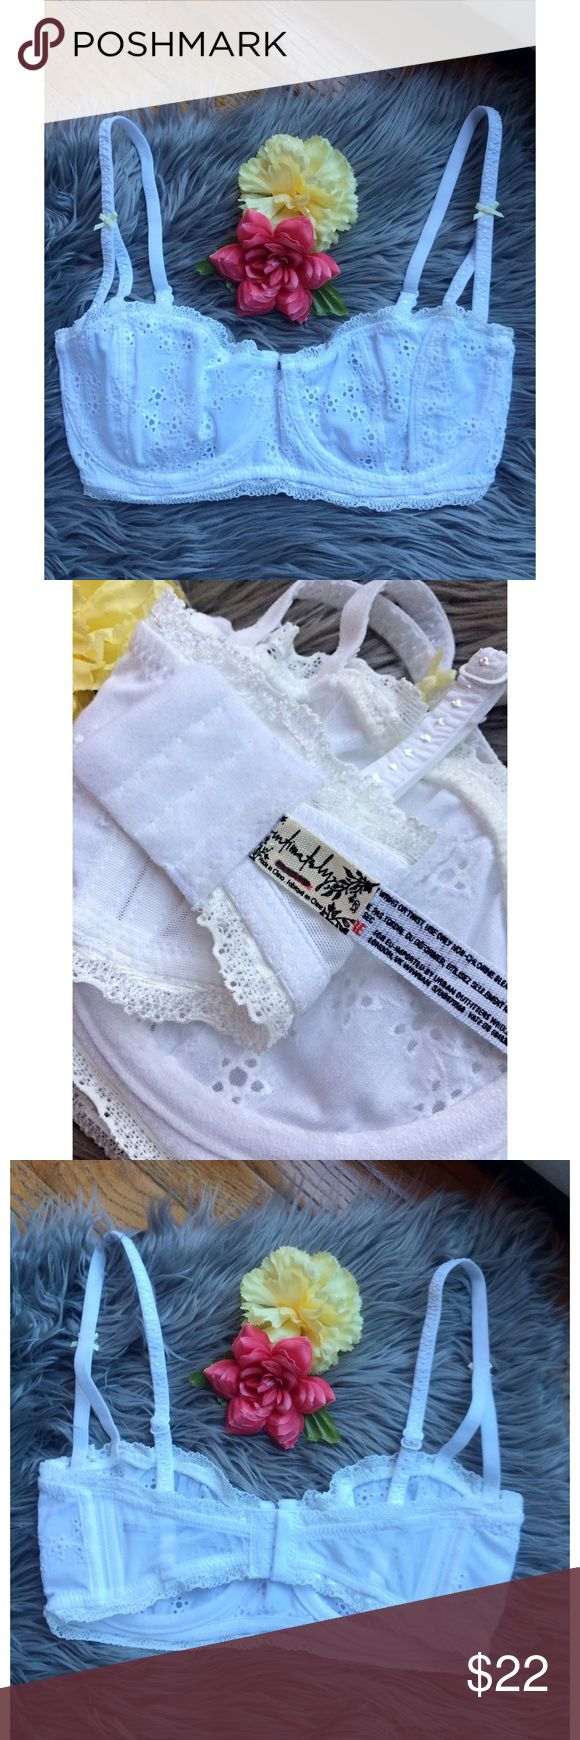 NWOT Free People White Oh My Darling Bra 🍃 Brand new without tags Free People Oh My Darling Bra in white! Balconet style bra, accented with small floral eyelet embroidery. Underwire cups. Hook-and-eye closure and adjustable shoulder straps! Tag marked to prevent store returns! Available in sizes 32D and 34B :) Free People Intimates & Sleepwear Bras